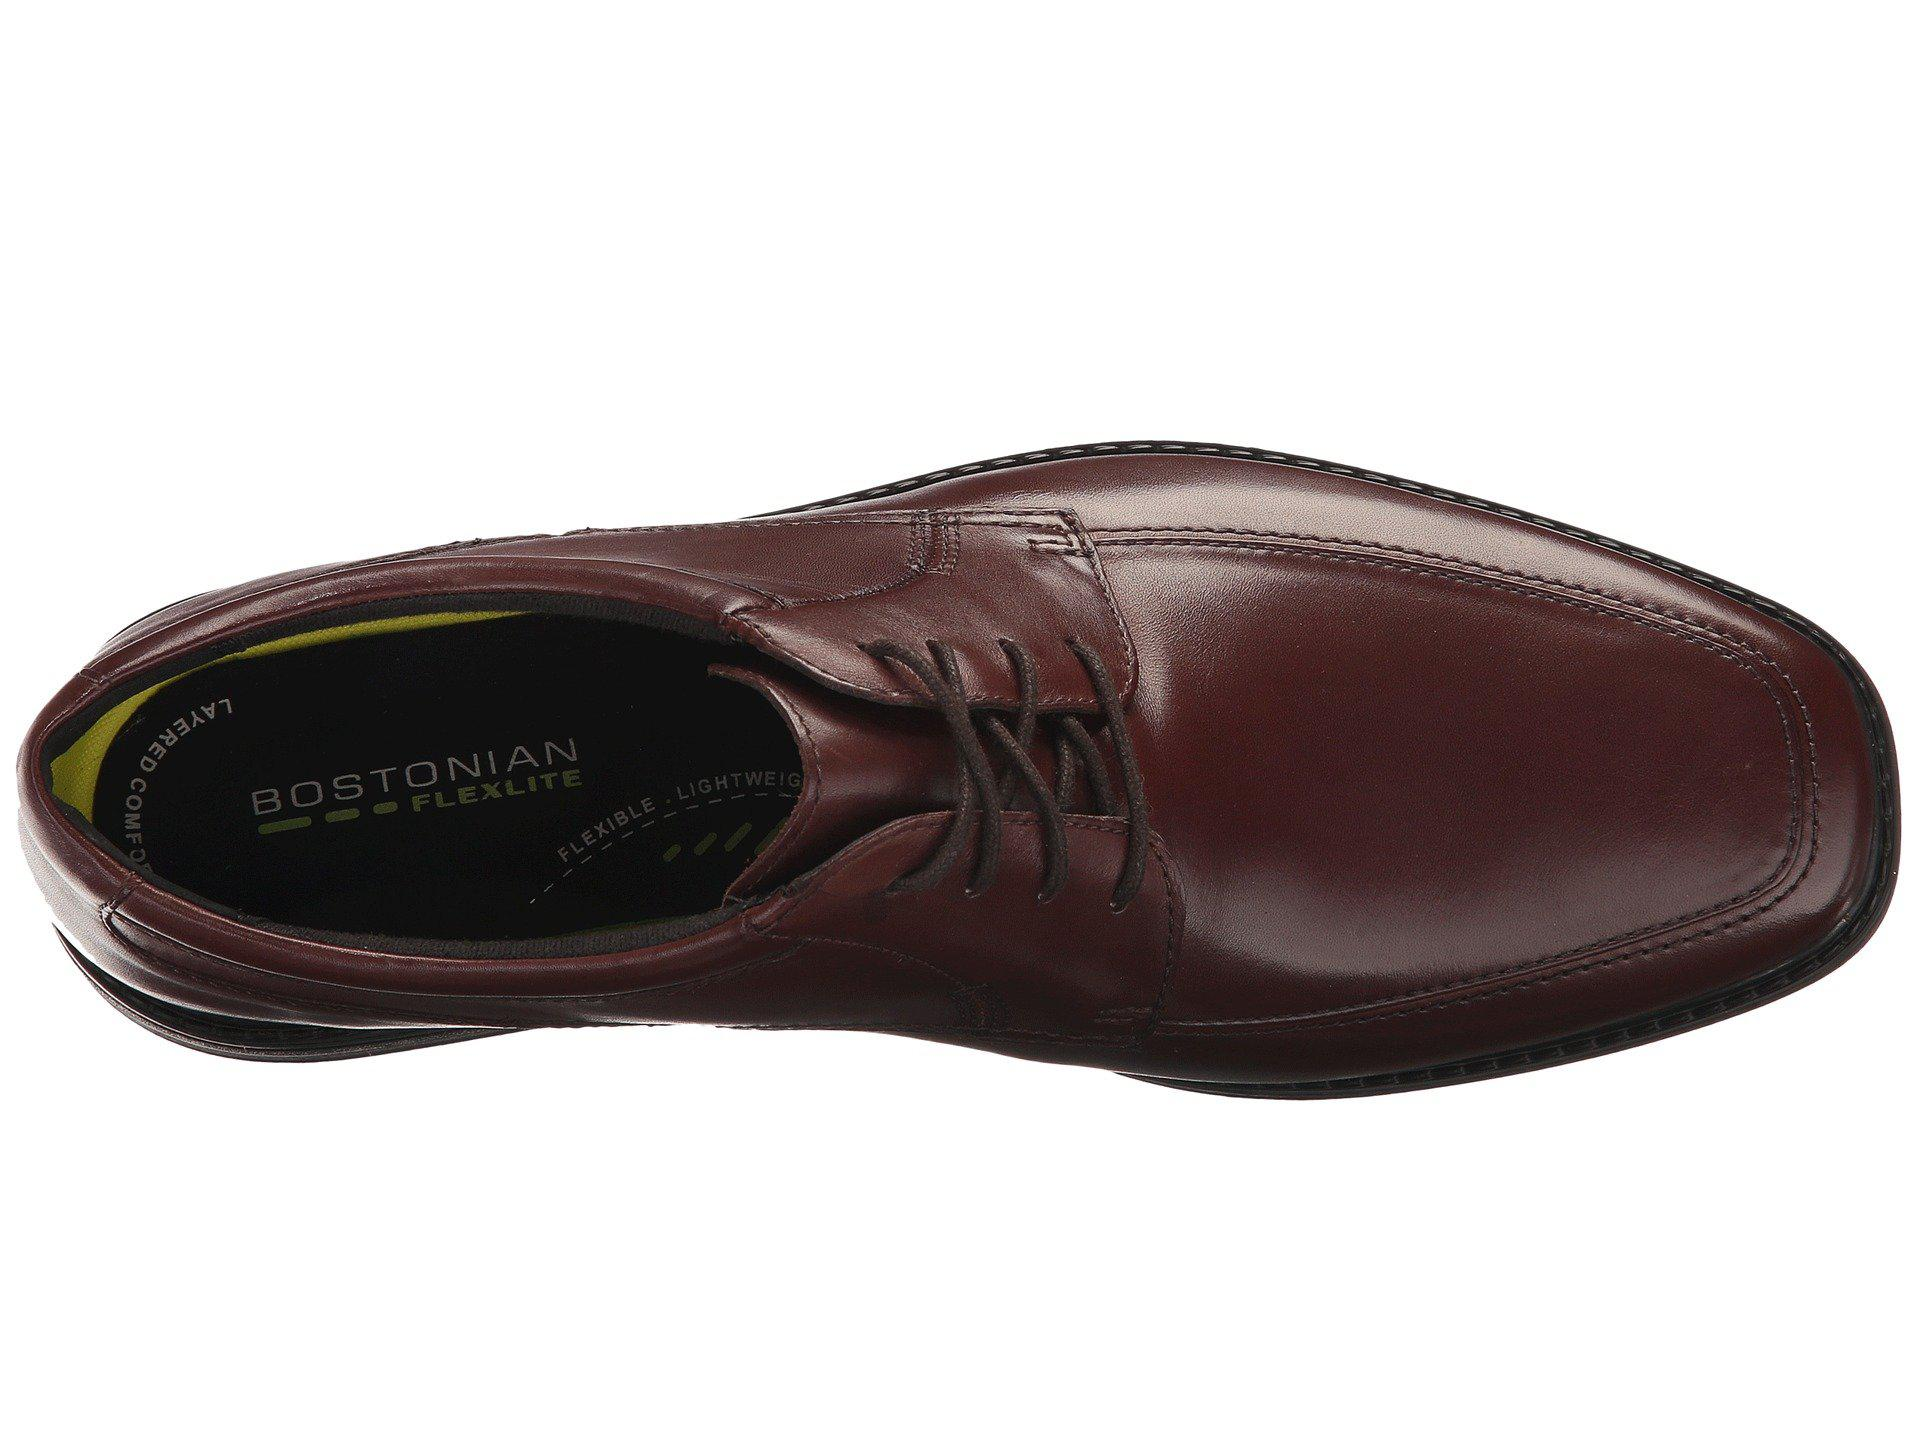 2b03e9012b2706 Lyst - Bostonian Ipswich Apron (brown) Men s Lace Up Wing Tip Shoes ...